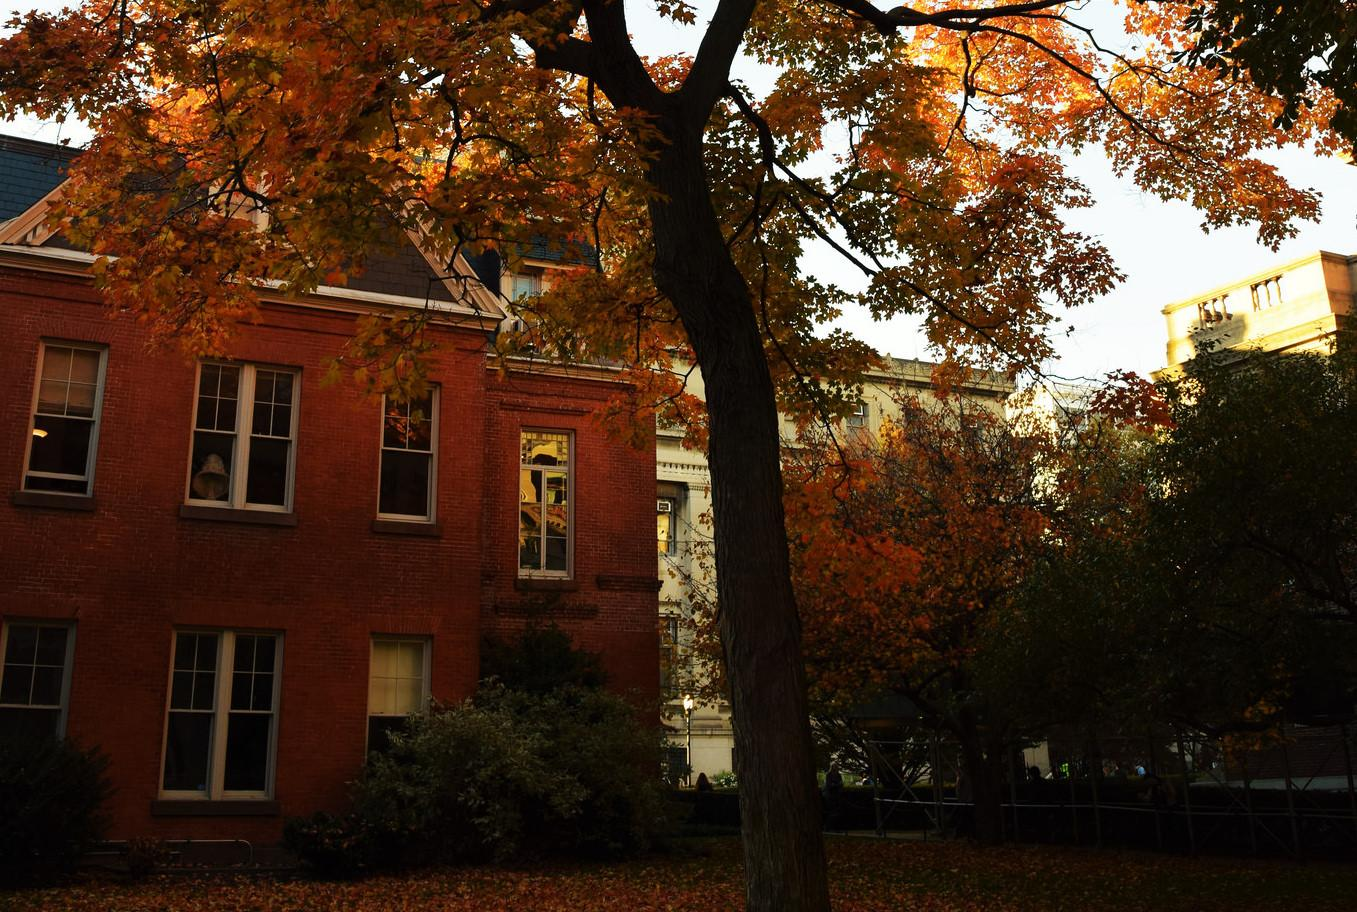 Maison francaise with fall foliage at sunset